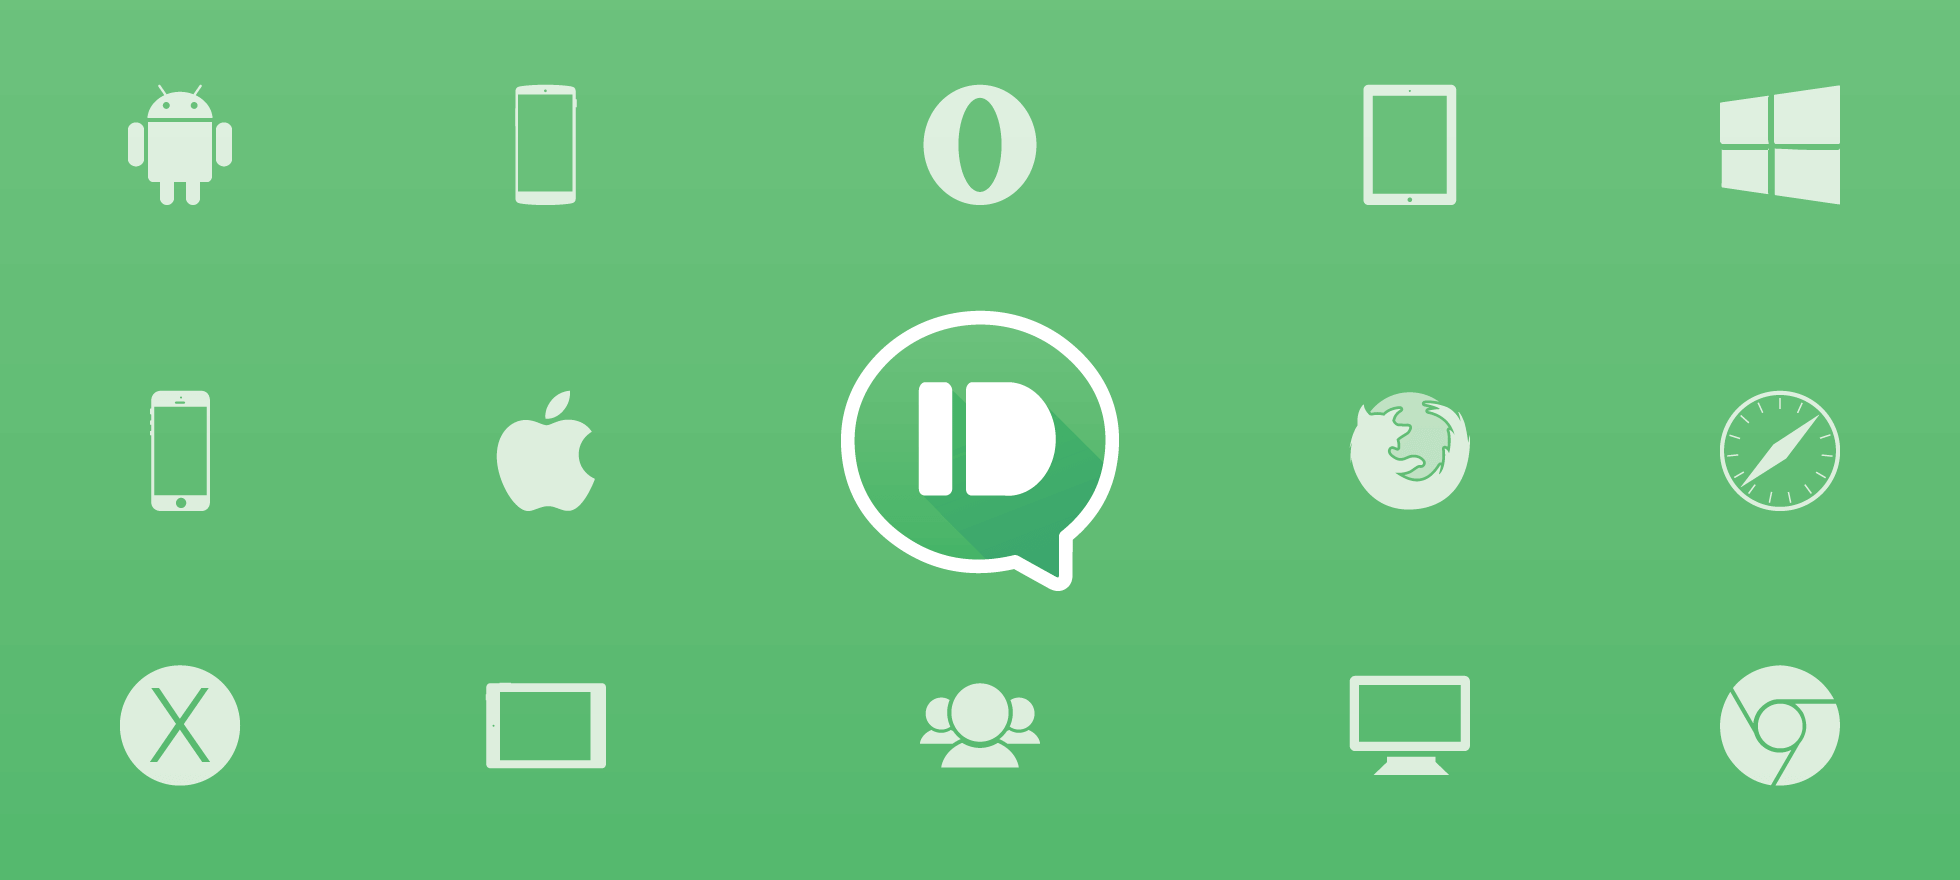 pushbullet header